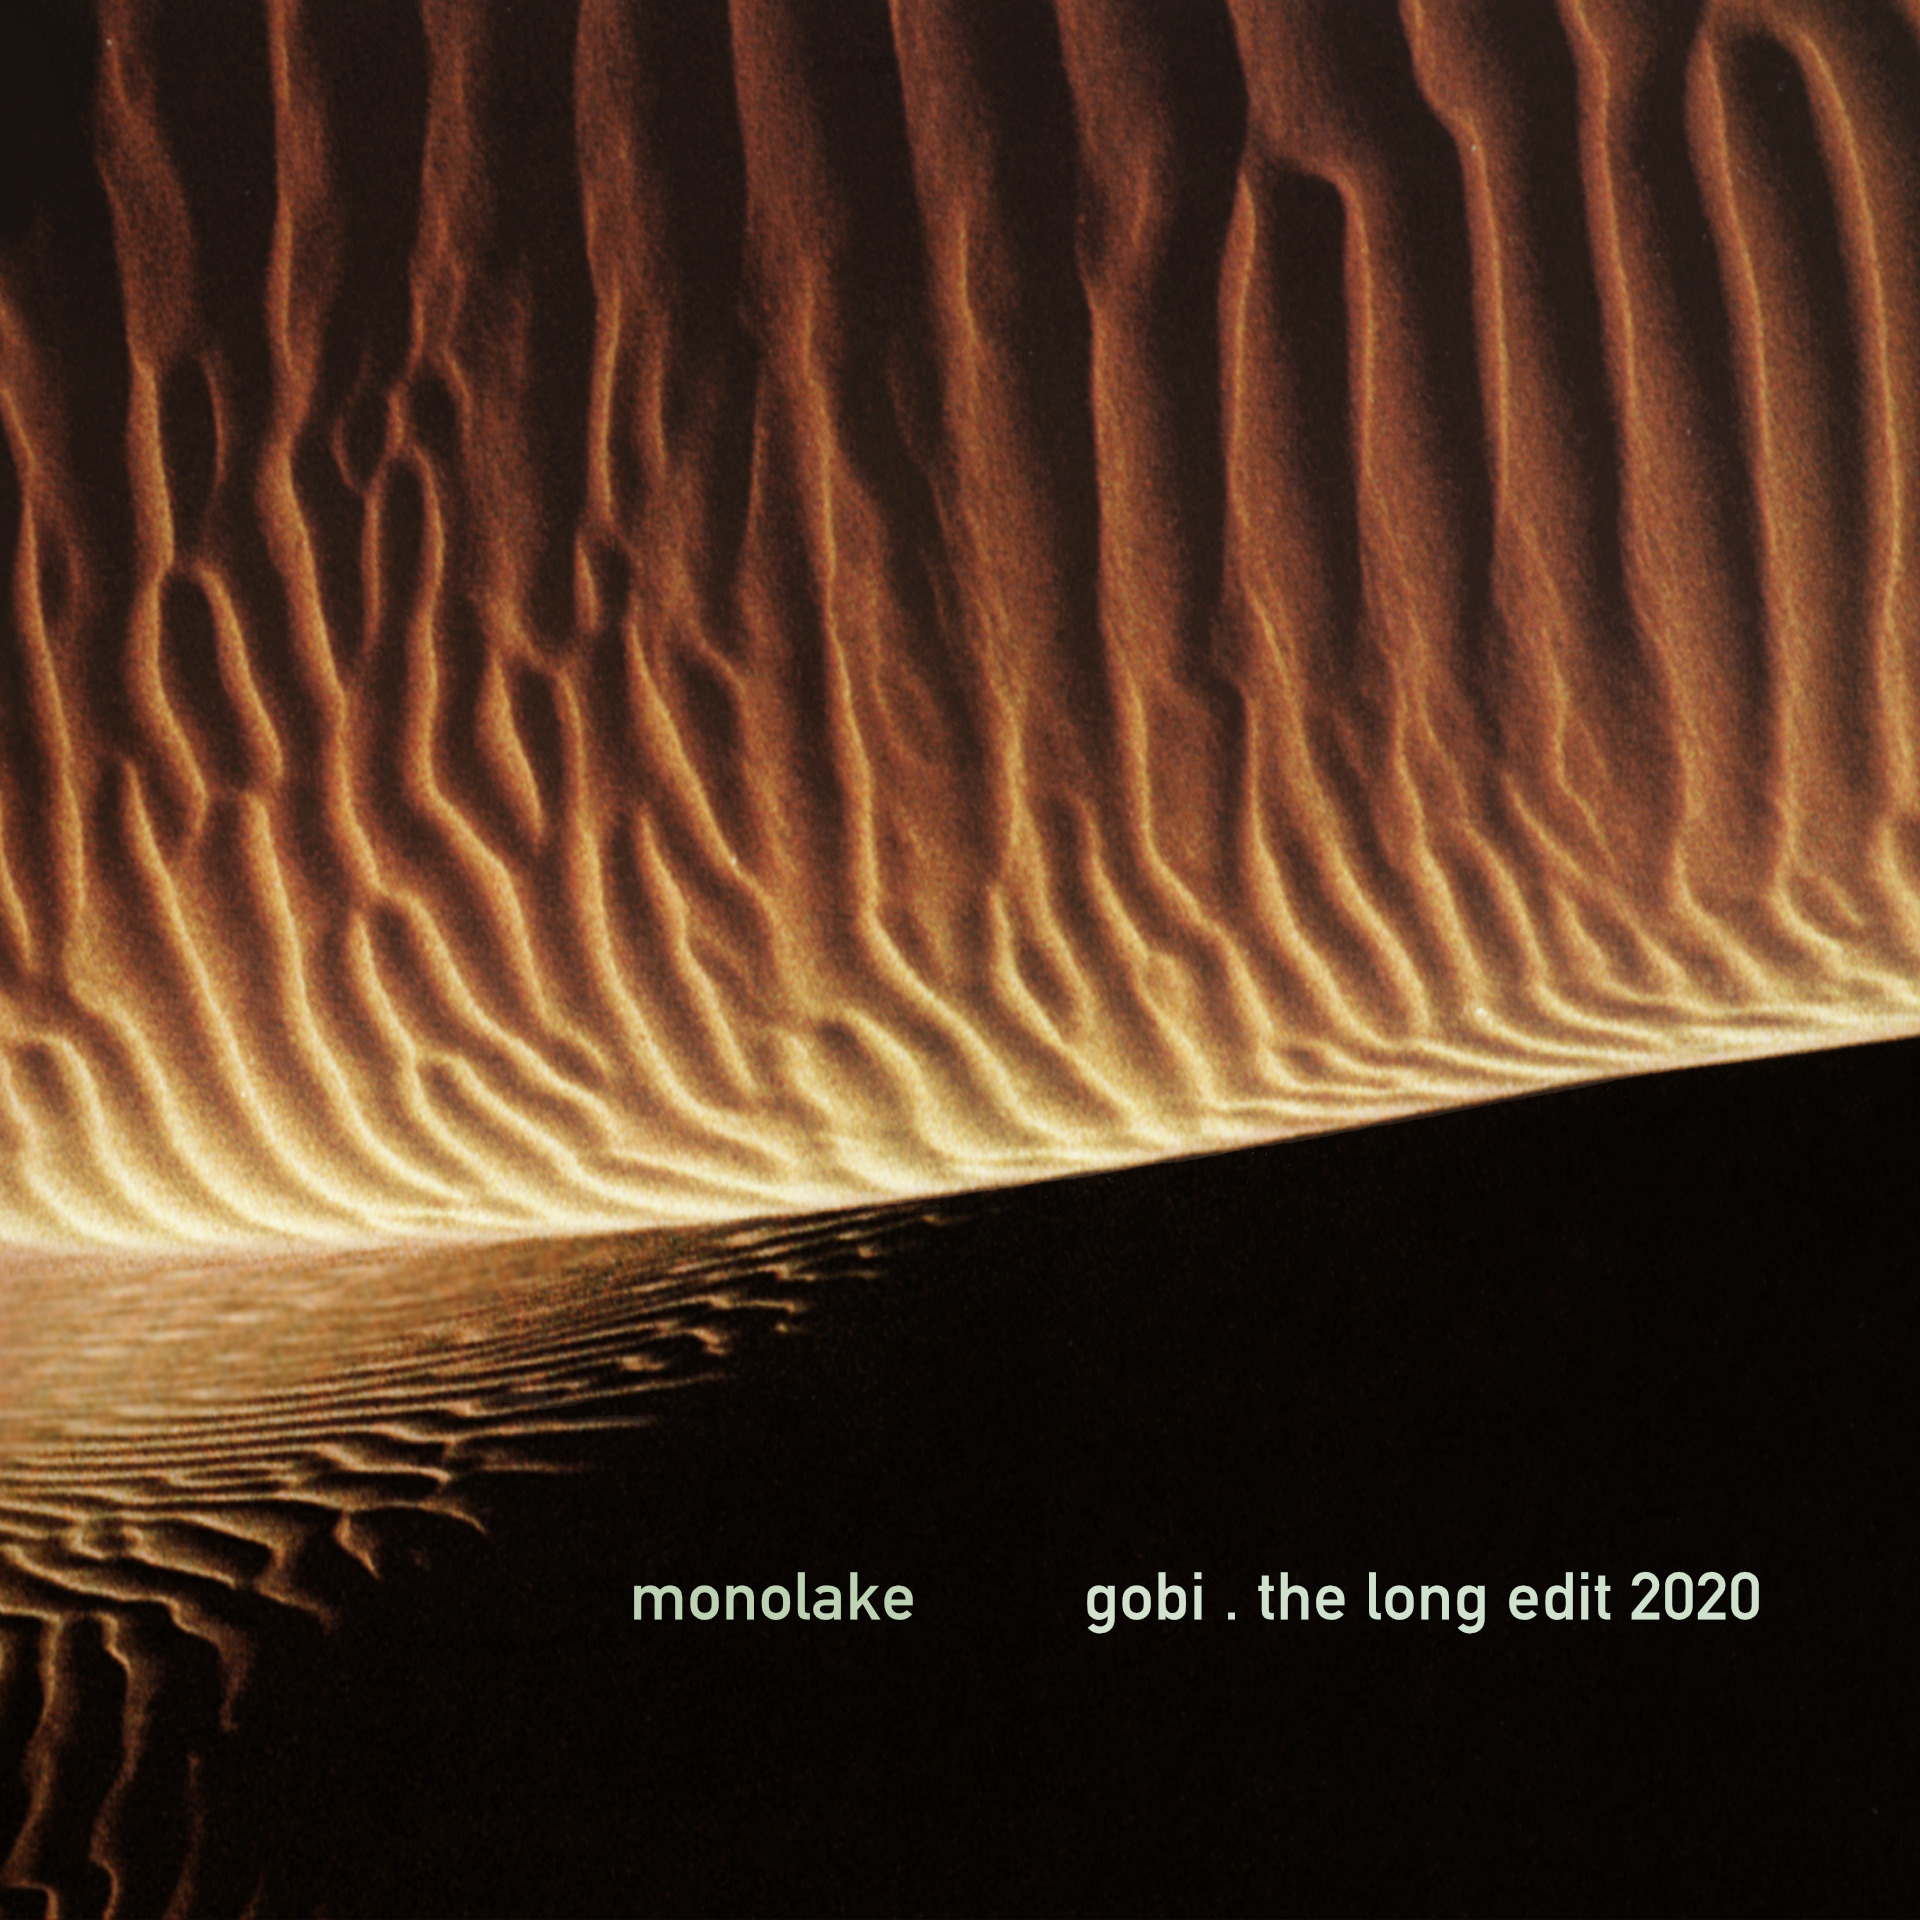 Monolake Gobi.The Long Edit 2020